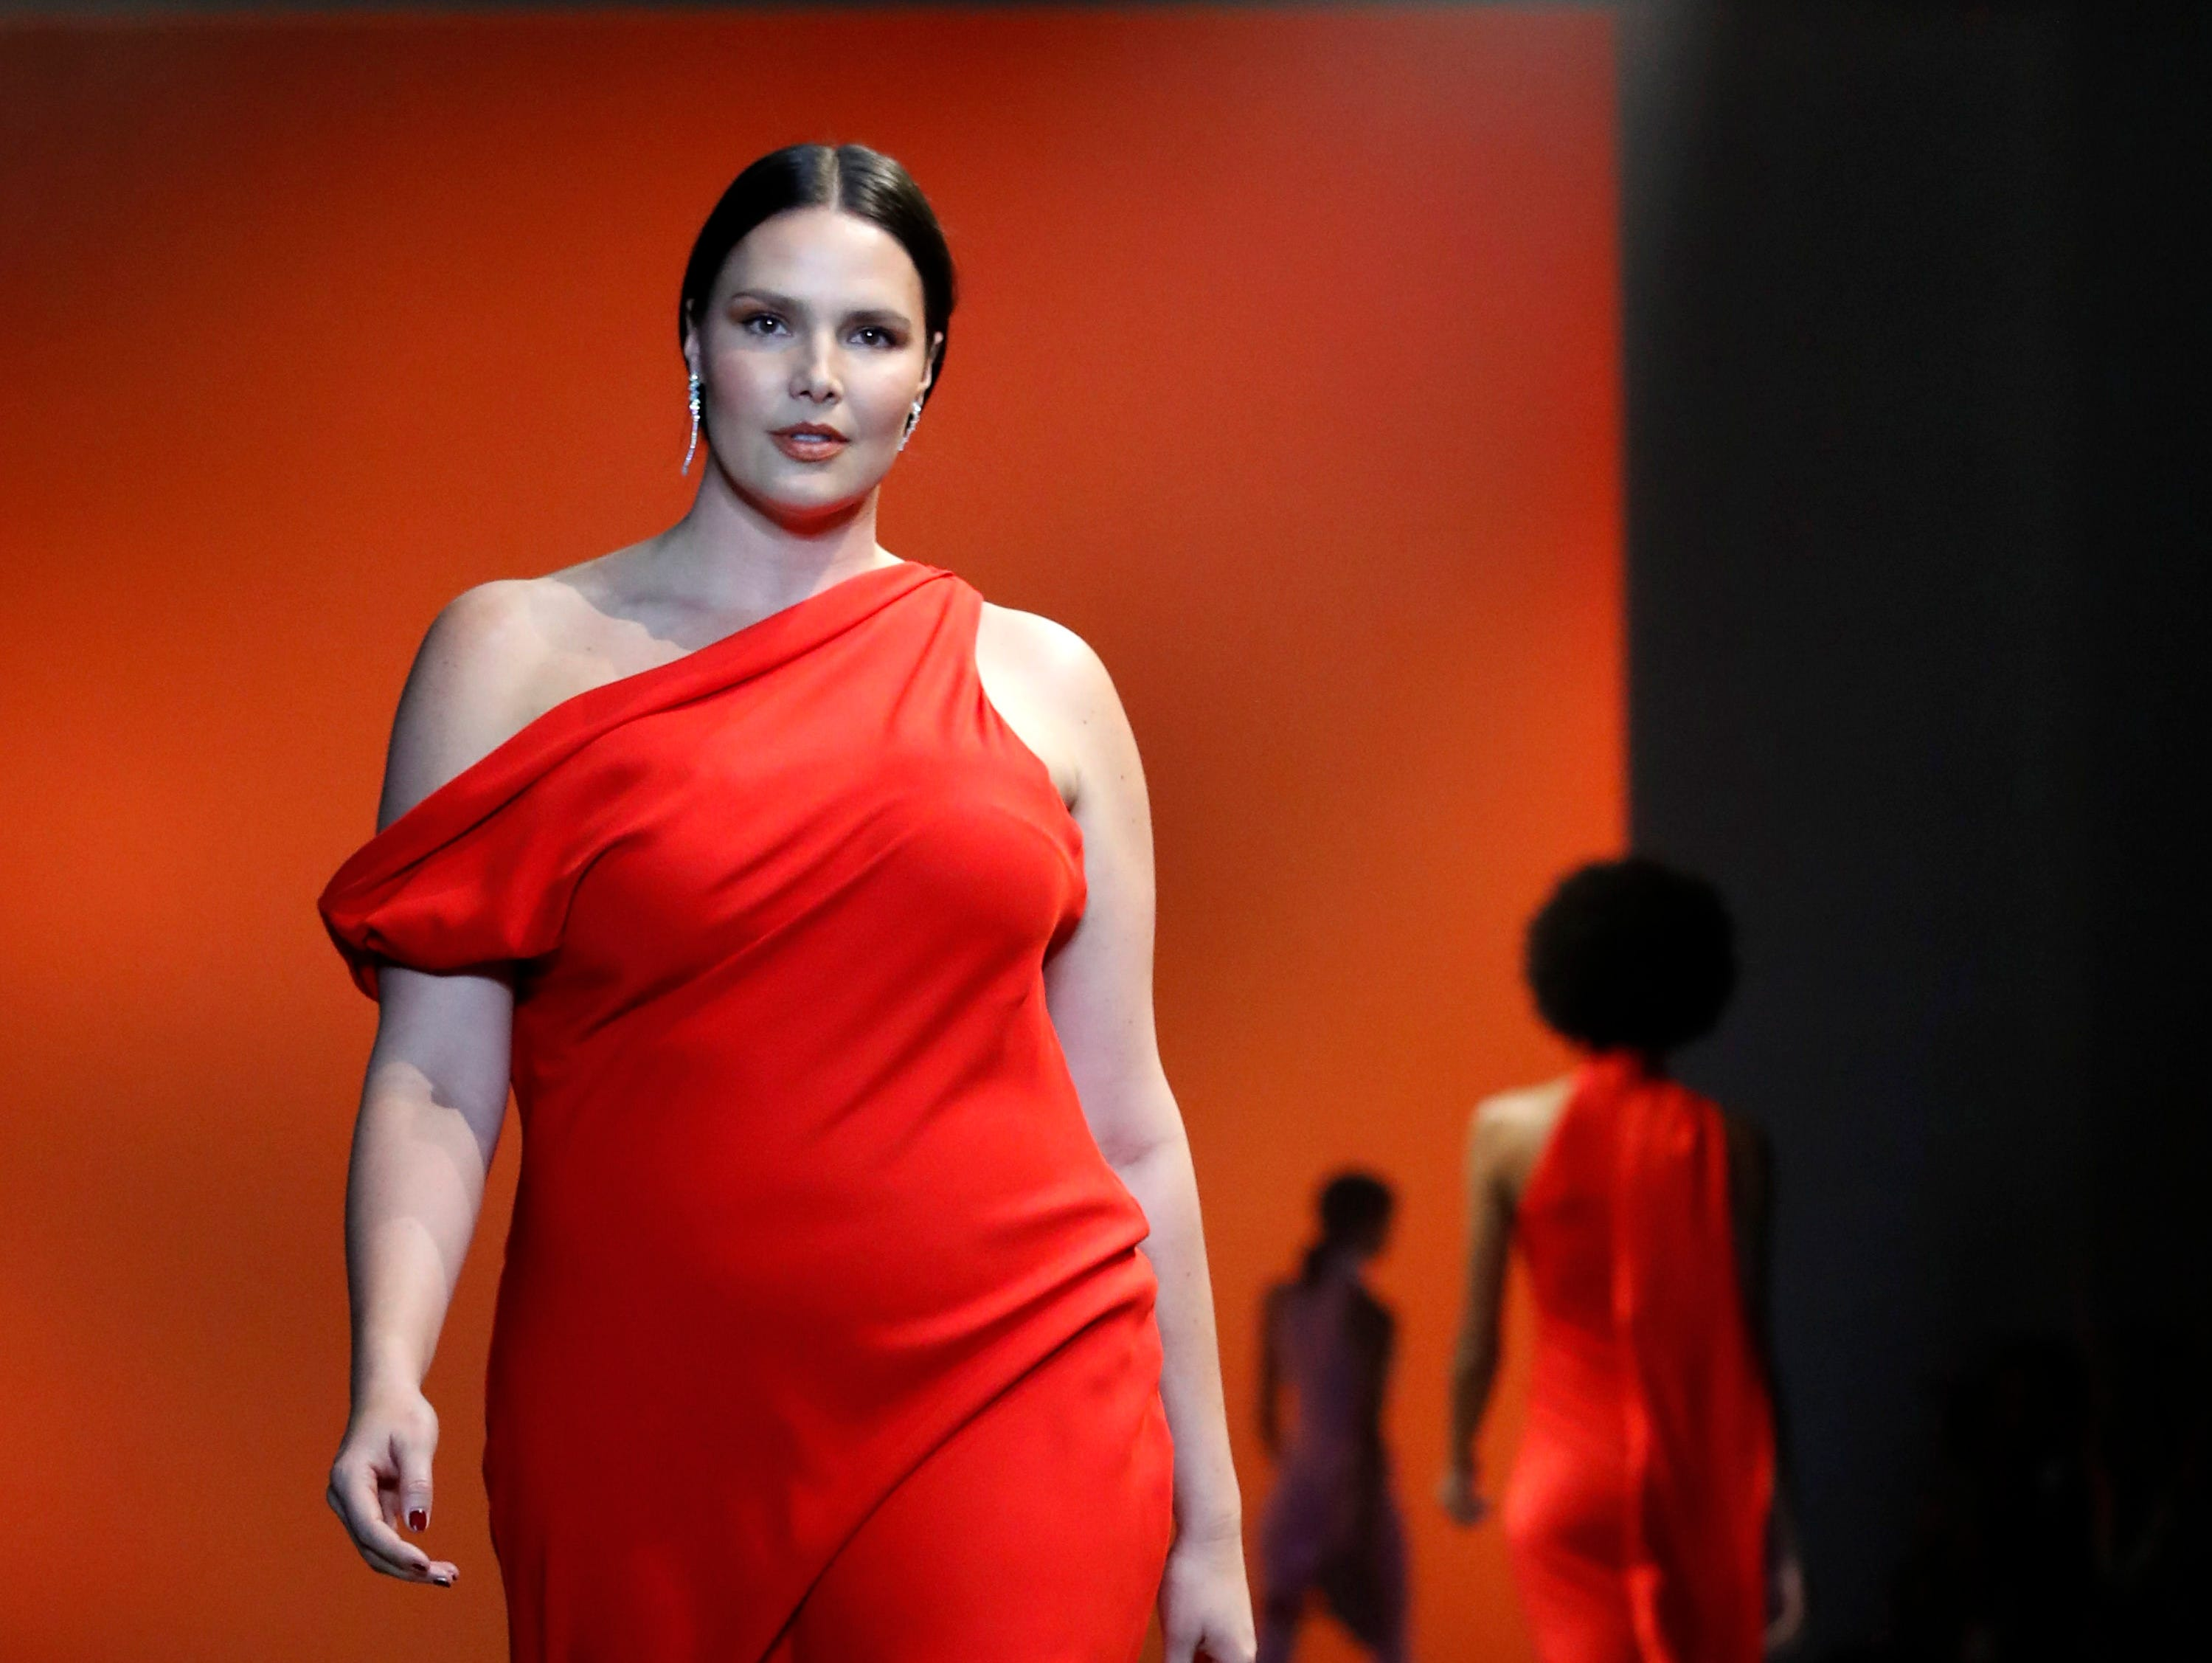 epa07353946 Models present creations by US designer Carly Cushnie for her label Cushnie during the New York Fashion Week, in New York, New York, 08 February 2019. The Fall-Winter 2019/20 collections are presented from 06 to 13 February.  EPA-EFE/JASON SZENES ORG XMIT: JSX01